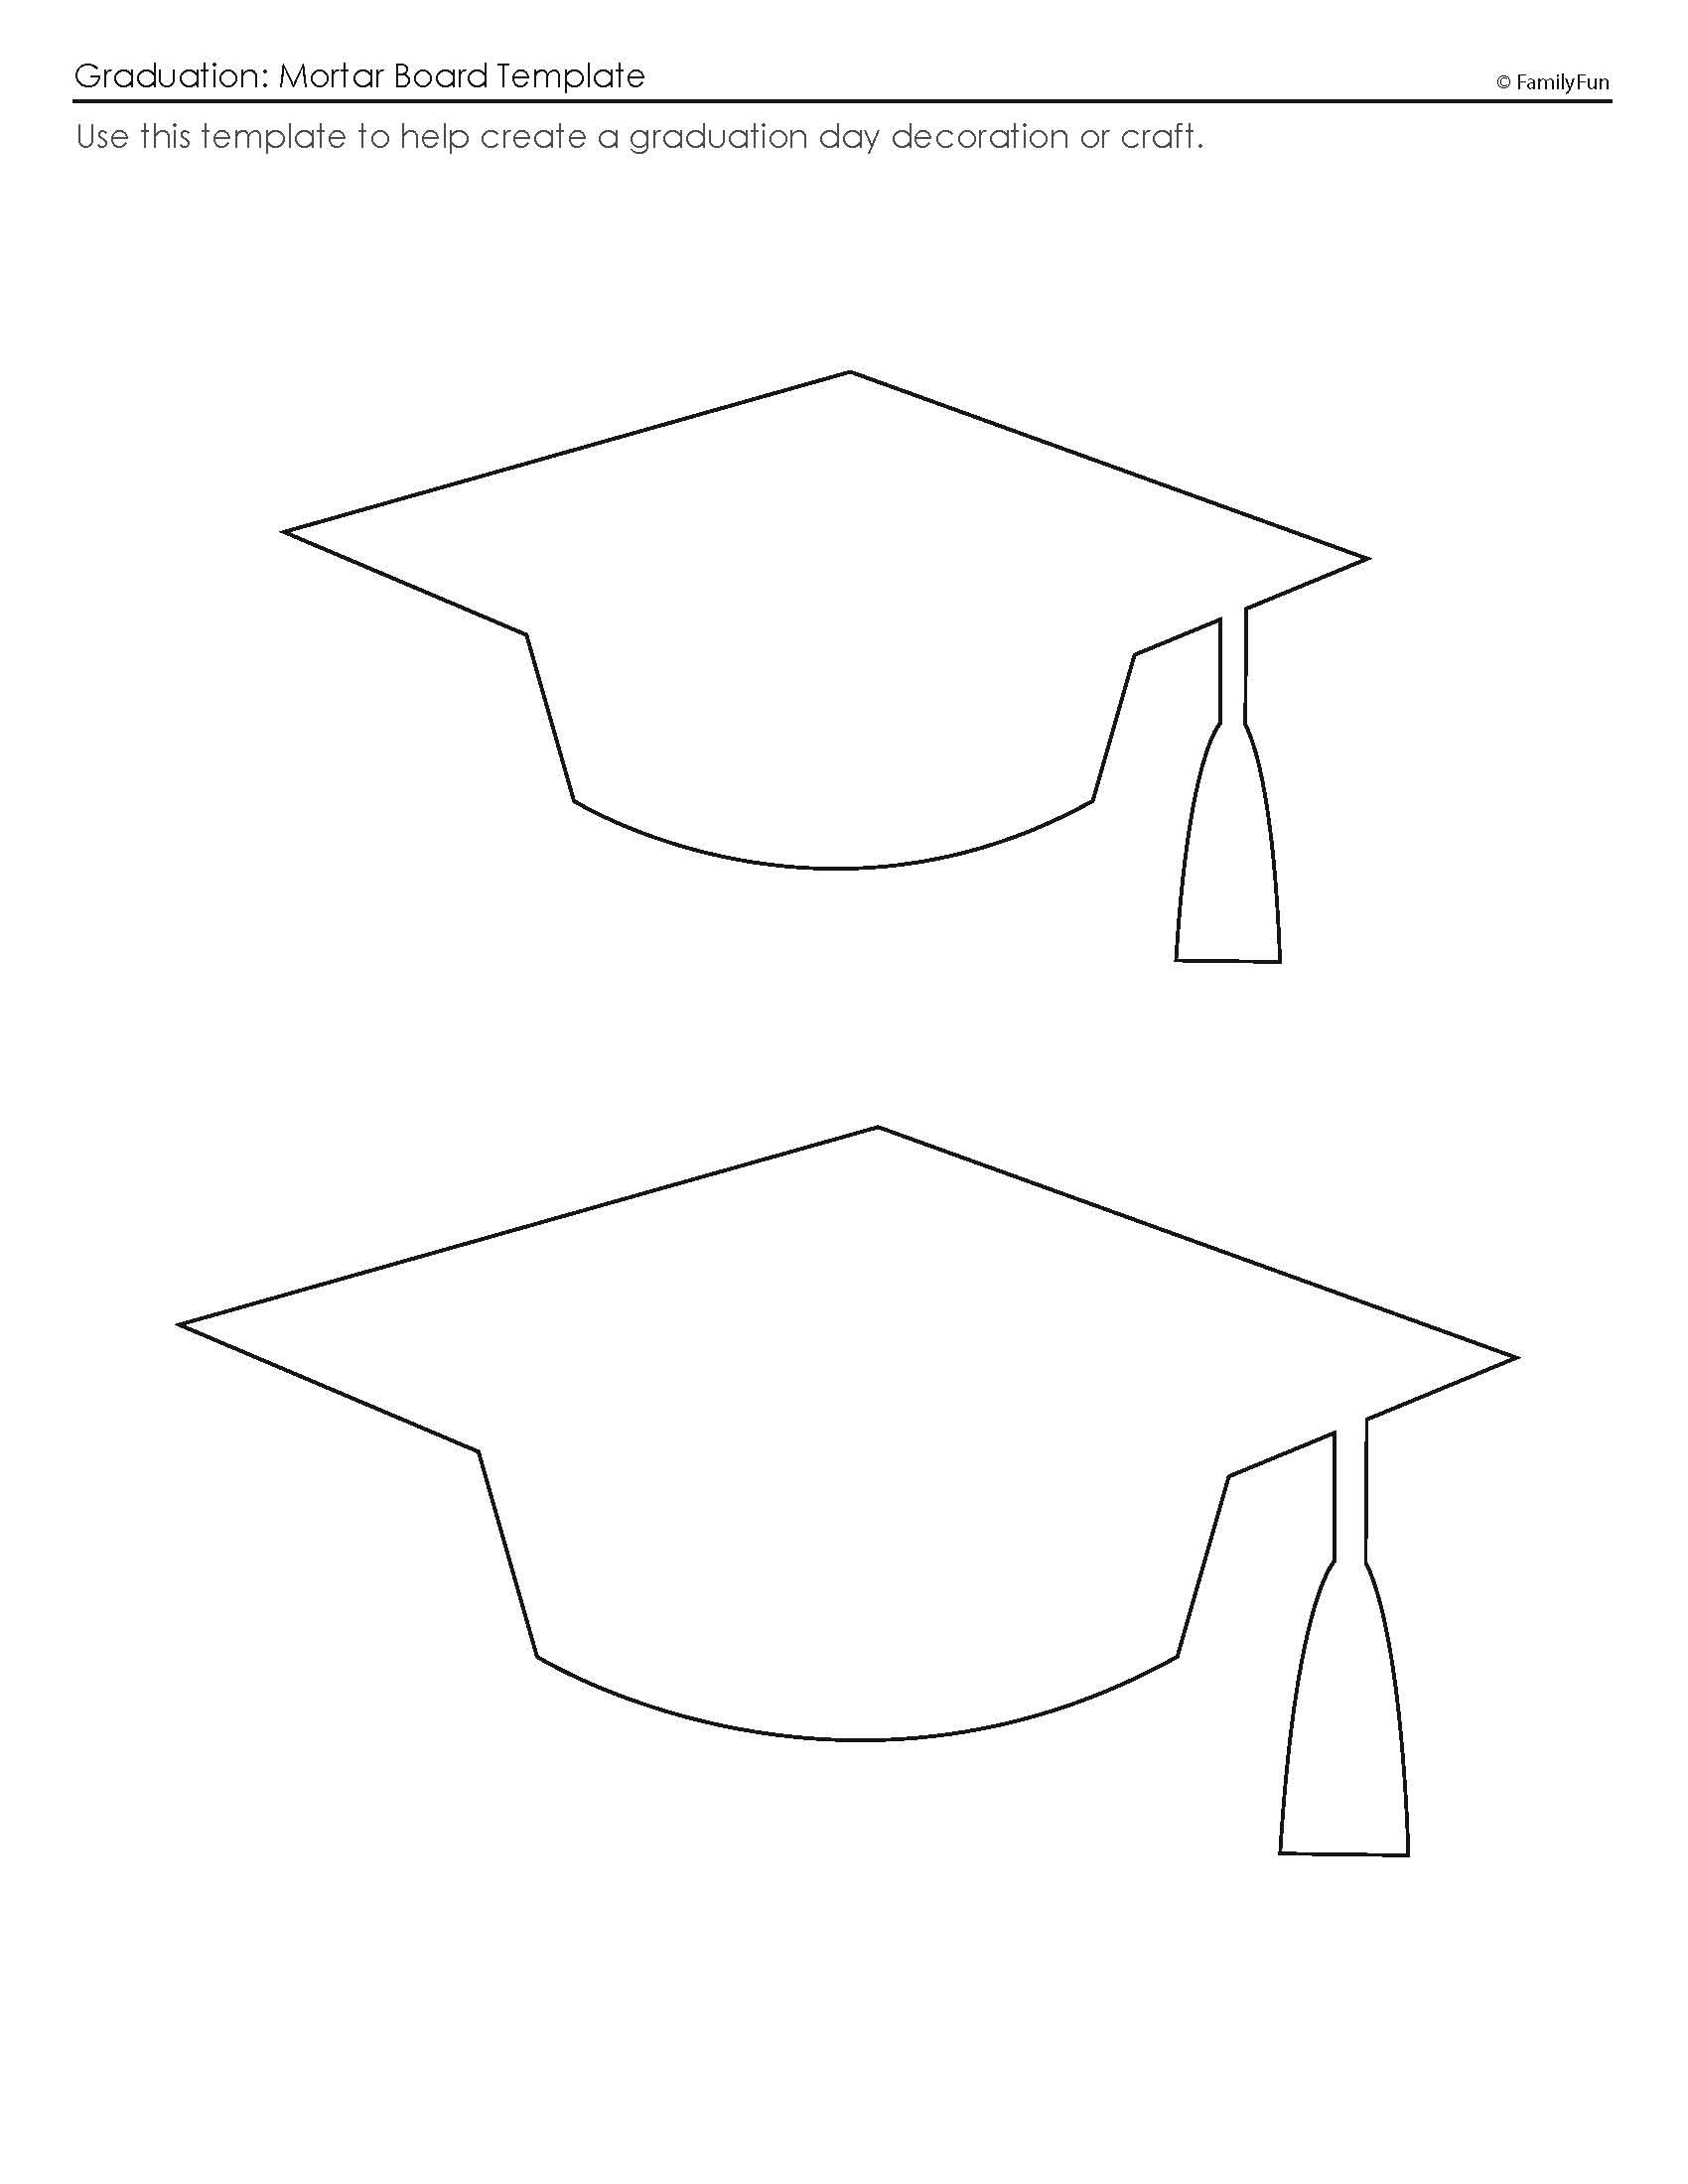 customize your free printable mortar board template graduate